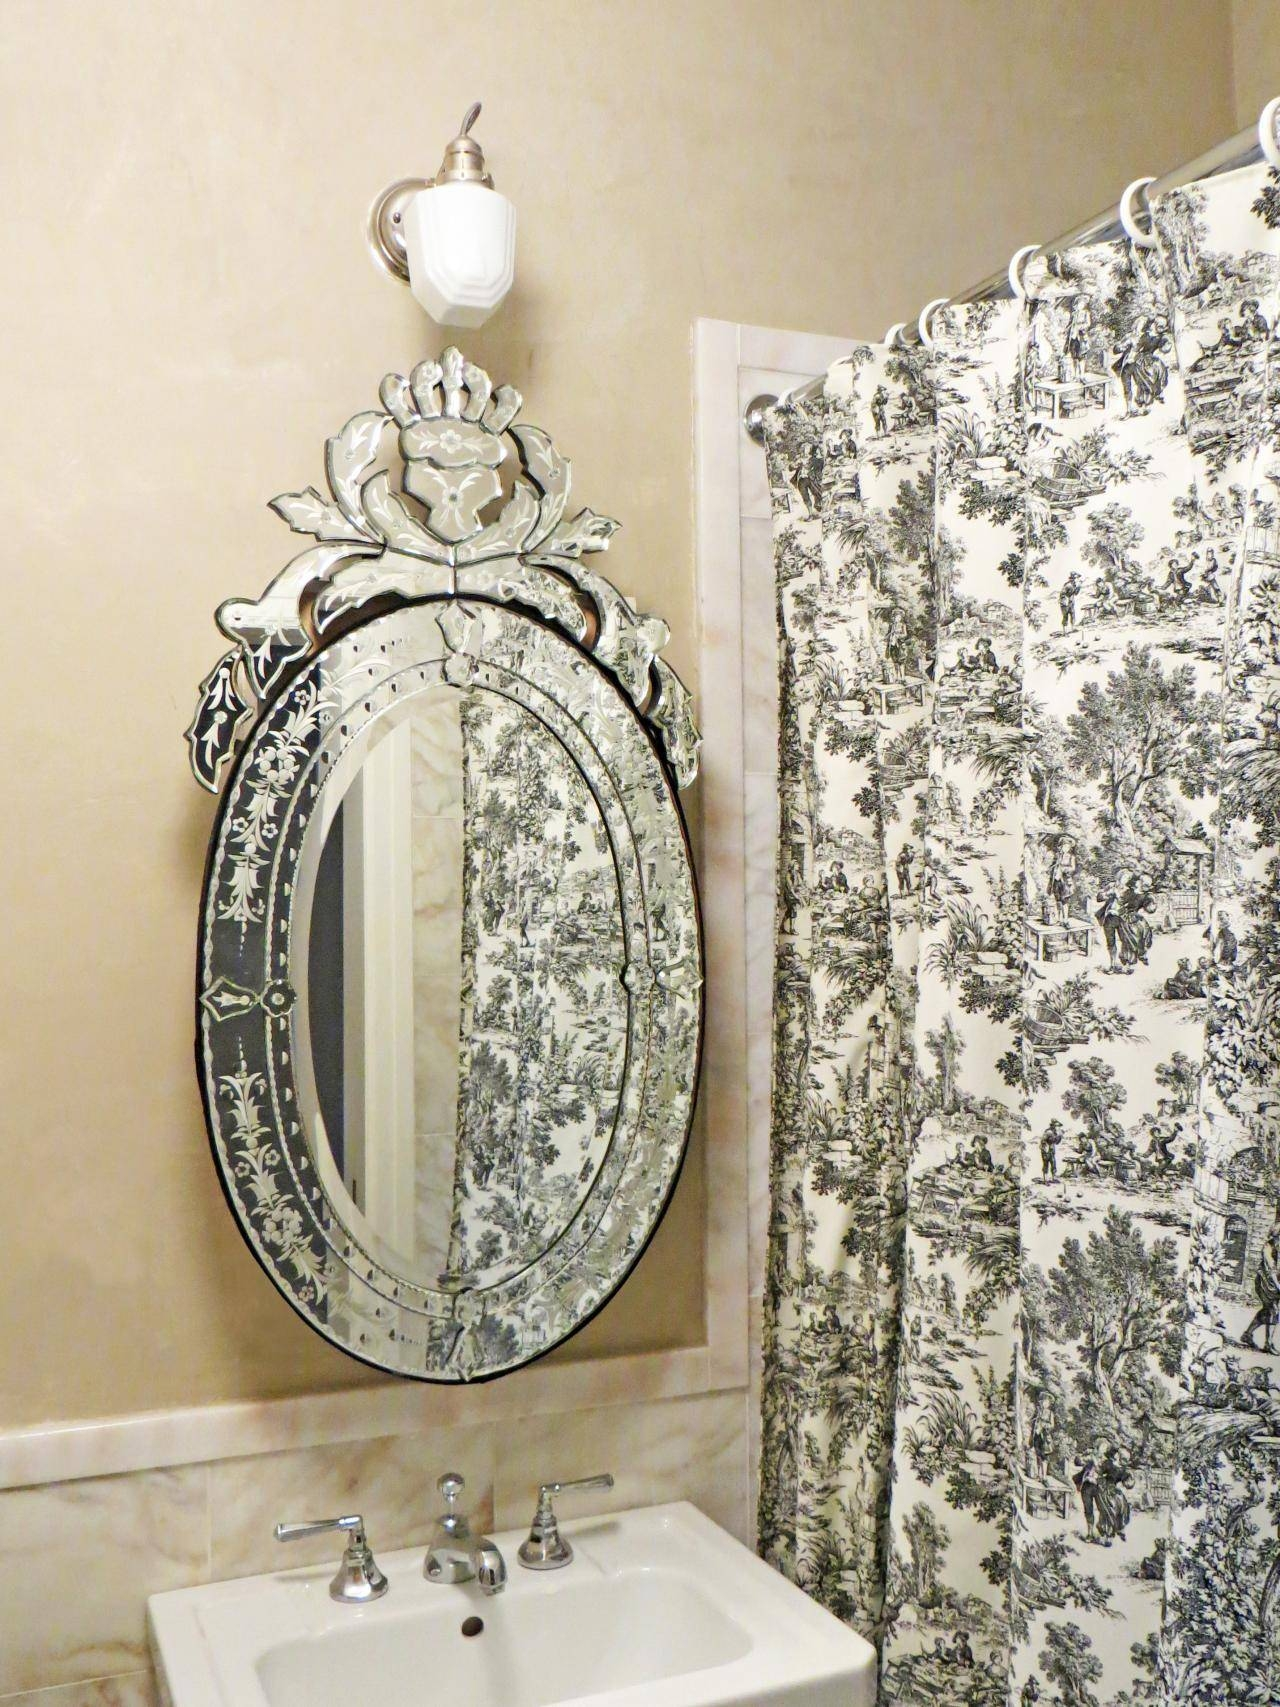 Bathroom: Bronze Framed Mirror | Oval Mirrors For Bathroom | Oval within Venetian Bathroom Mirrors (Image 8 of 25)